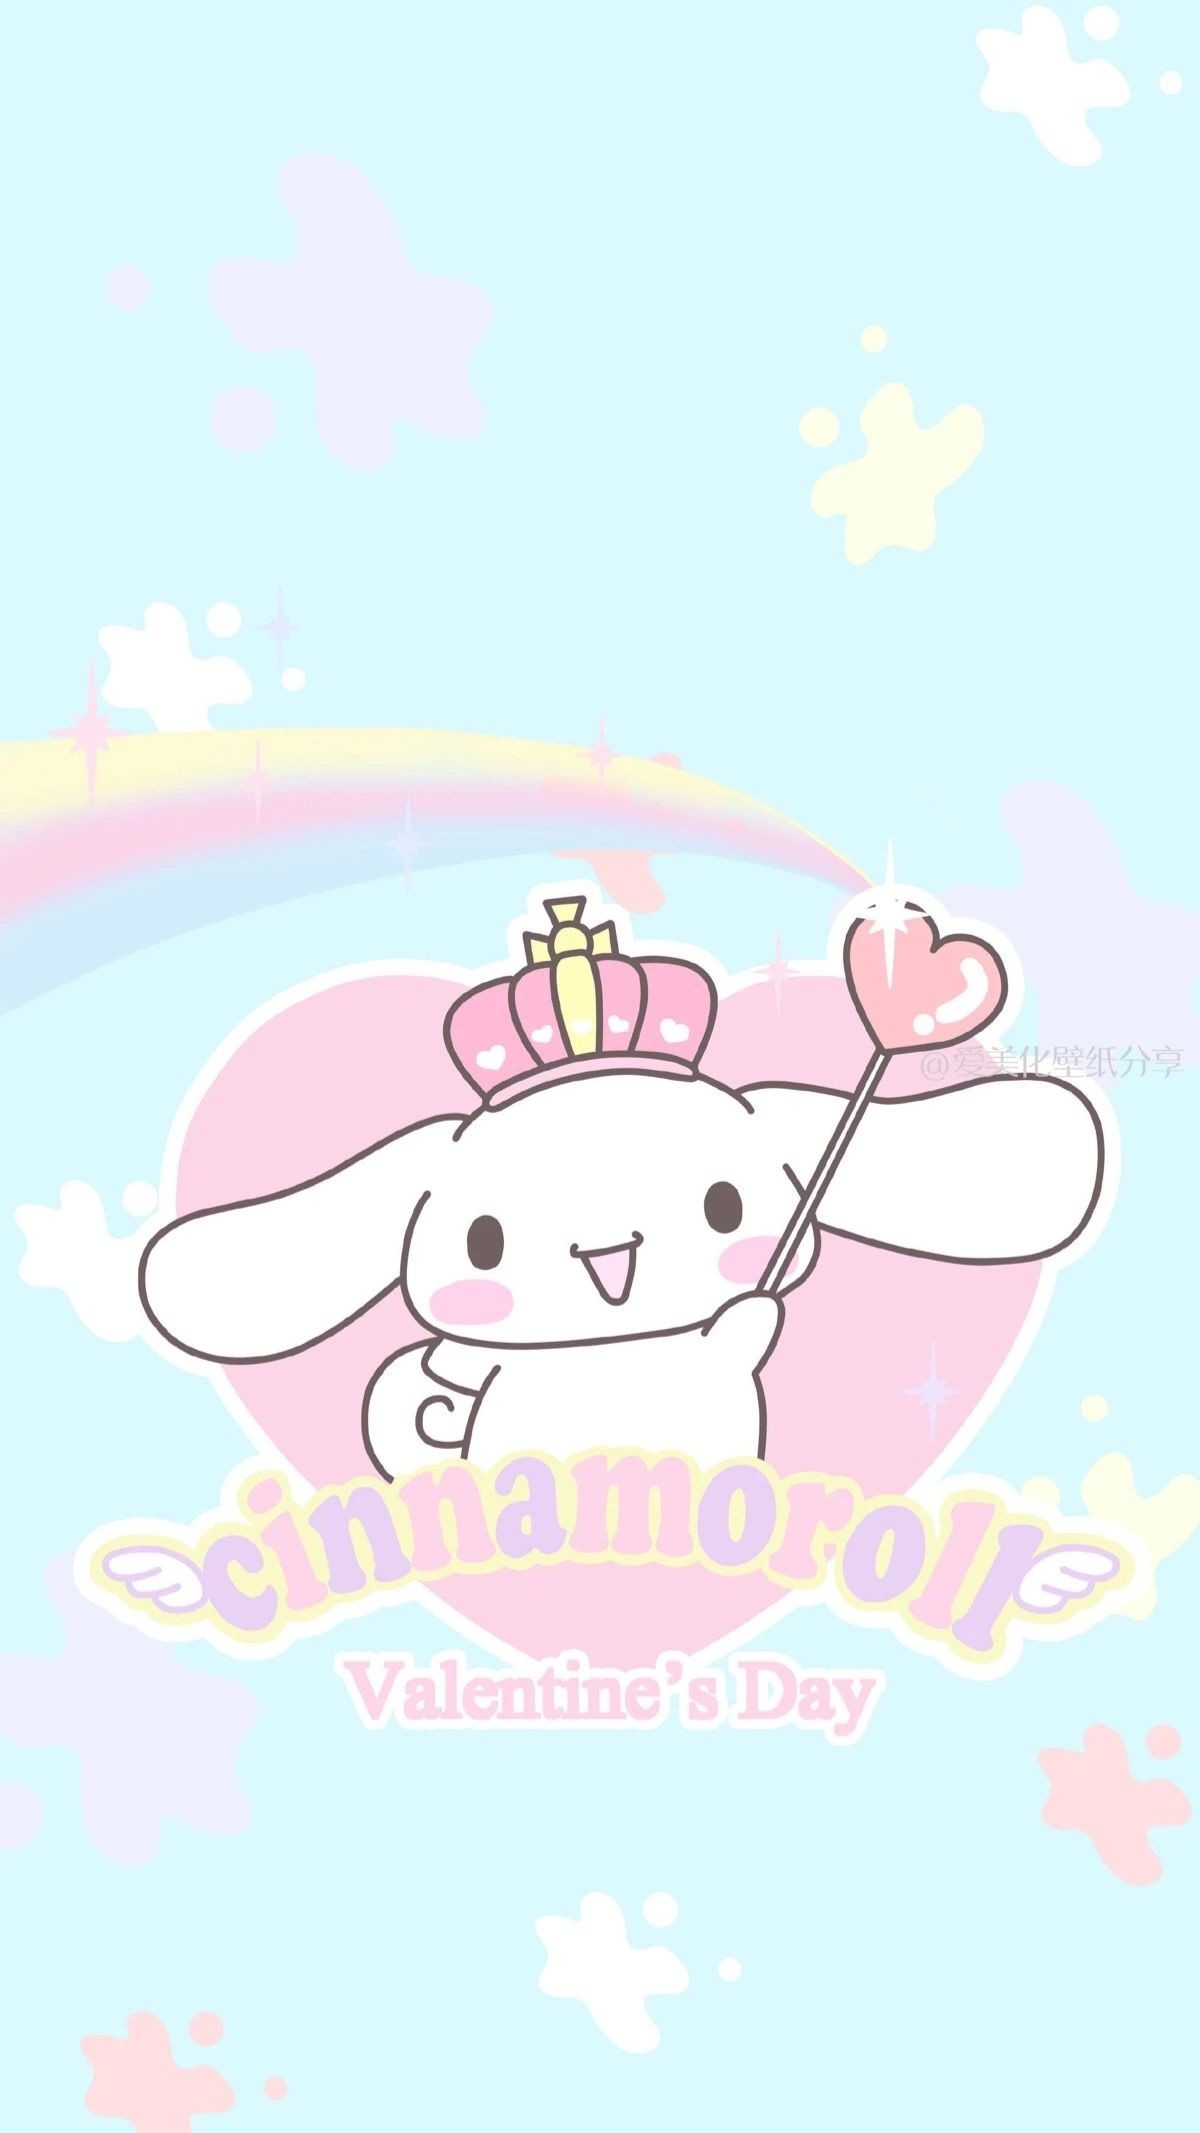 Res: 1200x2133, Sanrio Wallpaper, Kawaii Wallpaper, Phone Wallpapers, Strawberry Shortcake,  Cinnamon, Bunnies, Planners, Sugar, Backgrounds